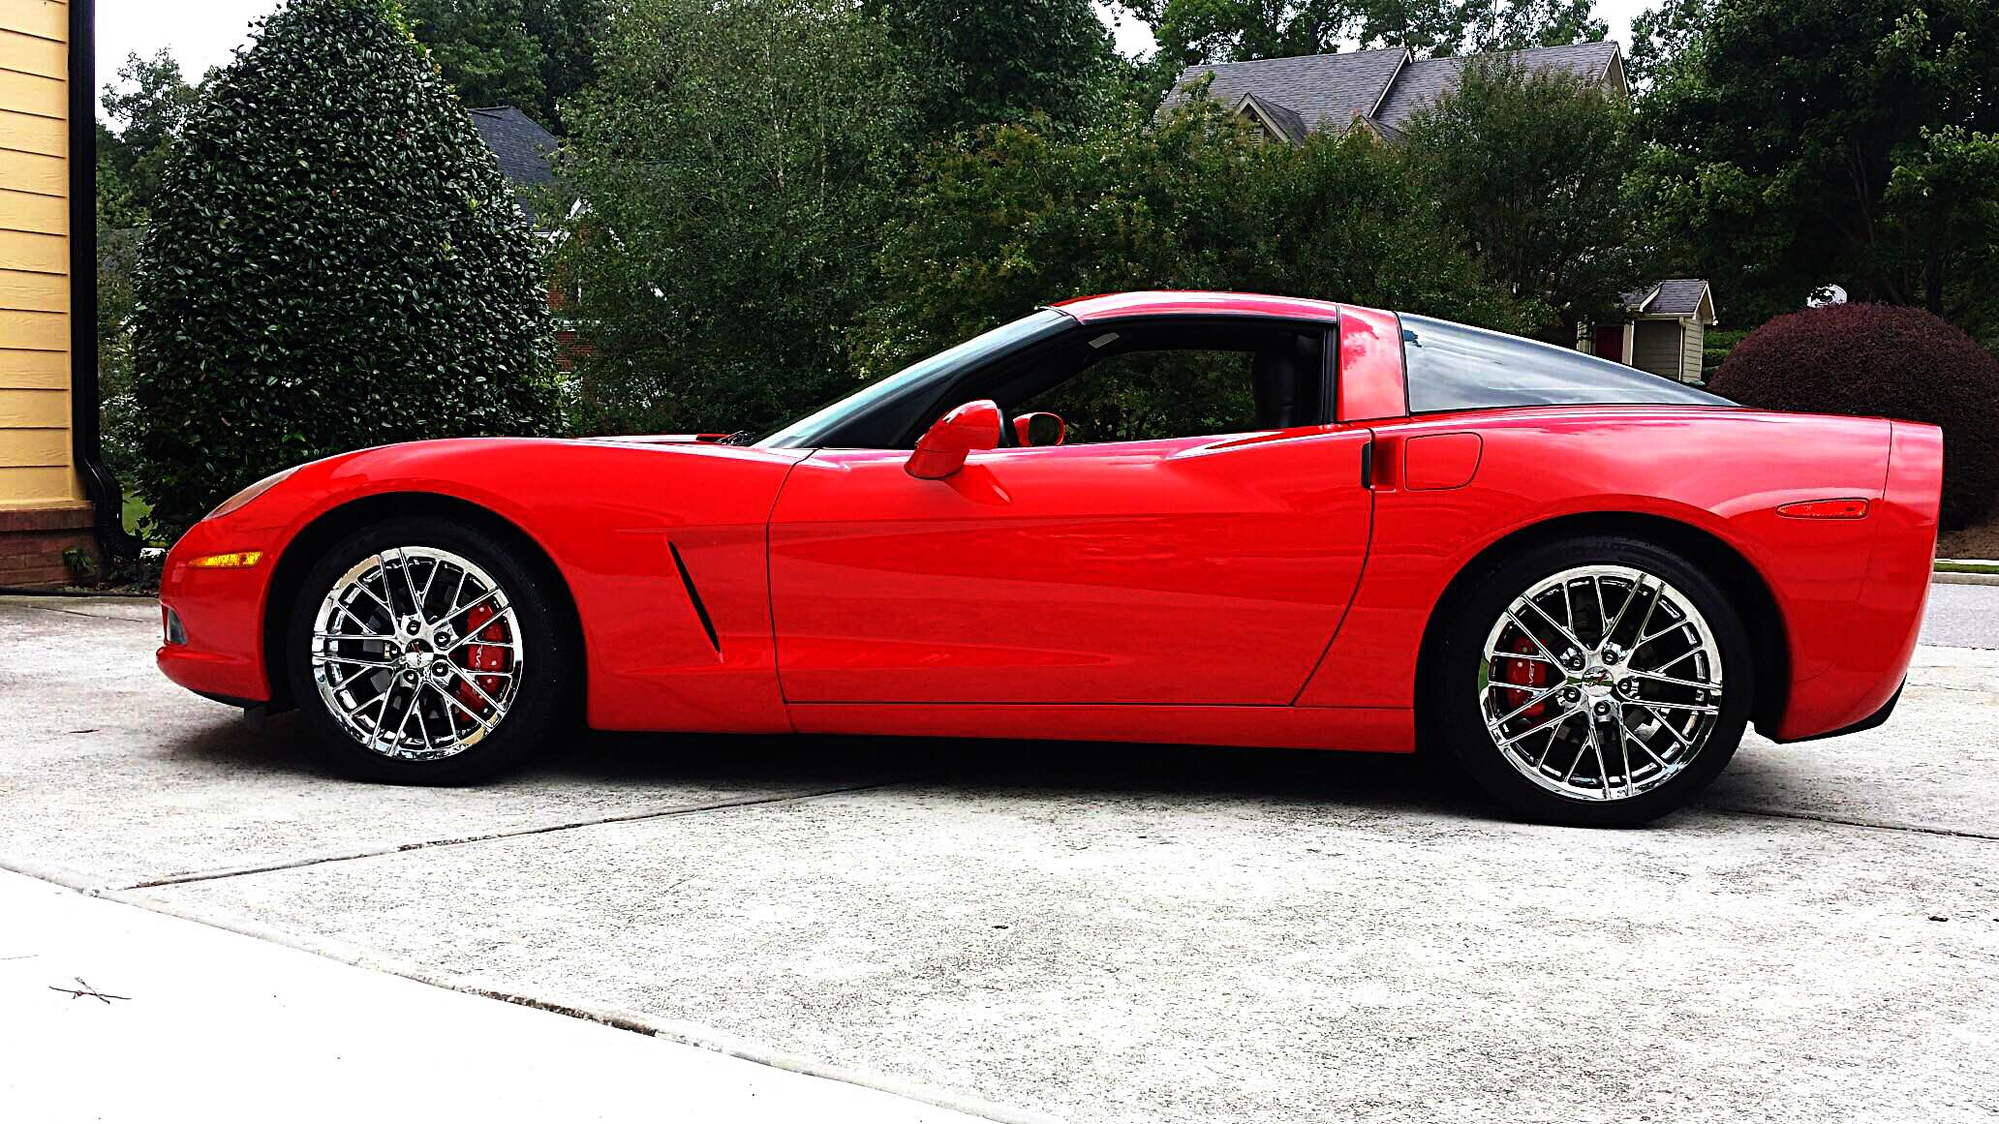 Miami Used Chevrolet >> ZR1 wheels on a Base 2005 C6 - CorvetteForum - Chevrolet Corvette Forum Discussion